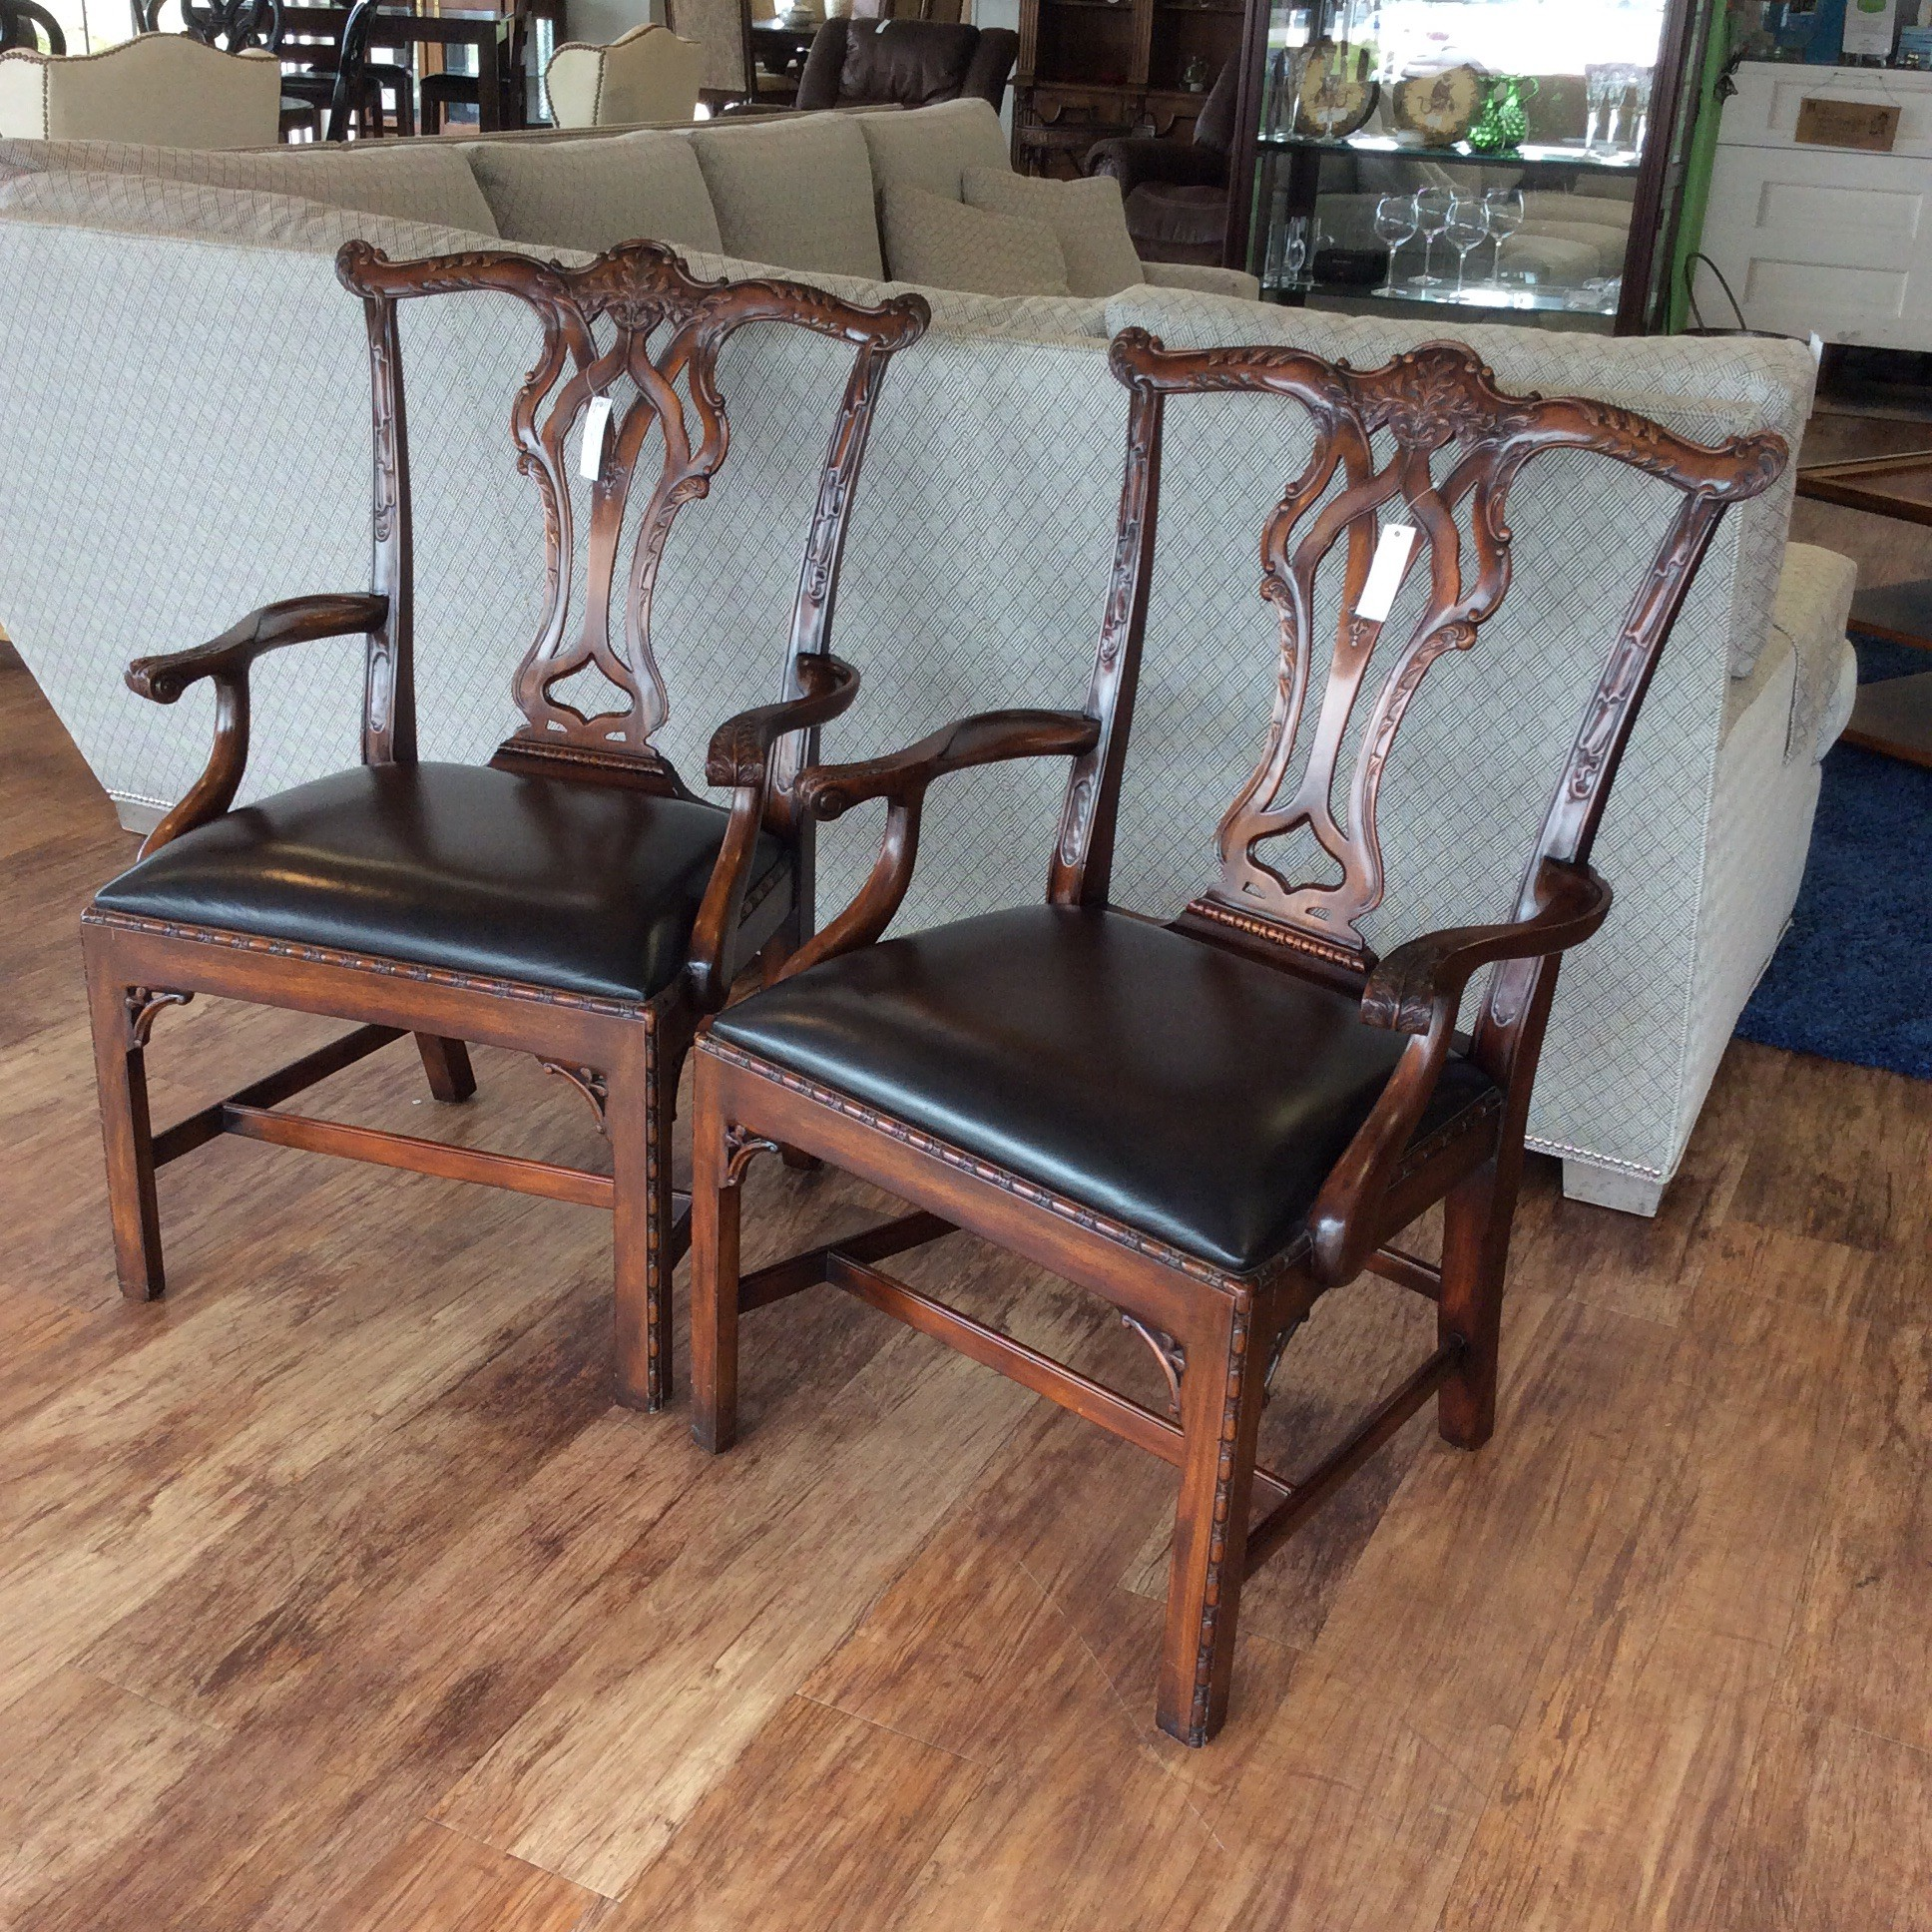 This is a stunning pair of chairs by Theo Alexander! Shaped by an historic English heiritage, this is one of the finest luxury brands in the world! This pair must be seen to be appreciated. They feature solid wood construction, a rich, dark wood finish, gorgeous ornate and detailed woodwork and fine leather upholstery. They represent an attention to detail and pride in quality craftsmanship that is hard to find these days.